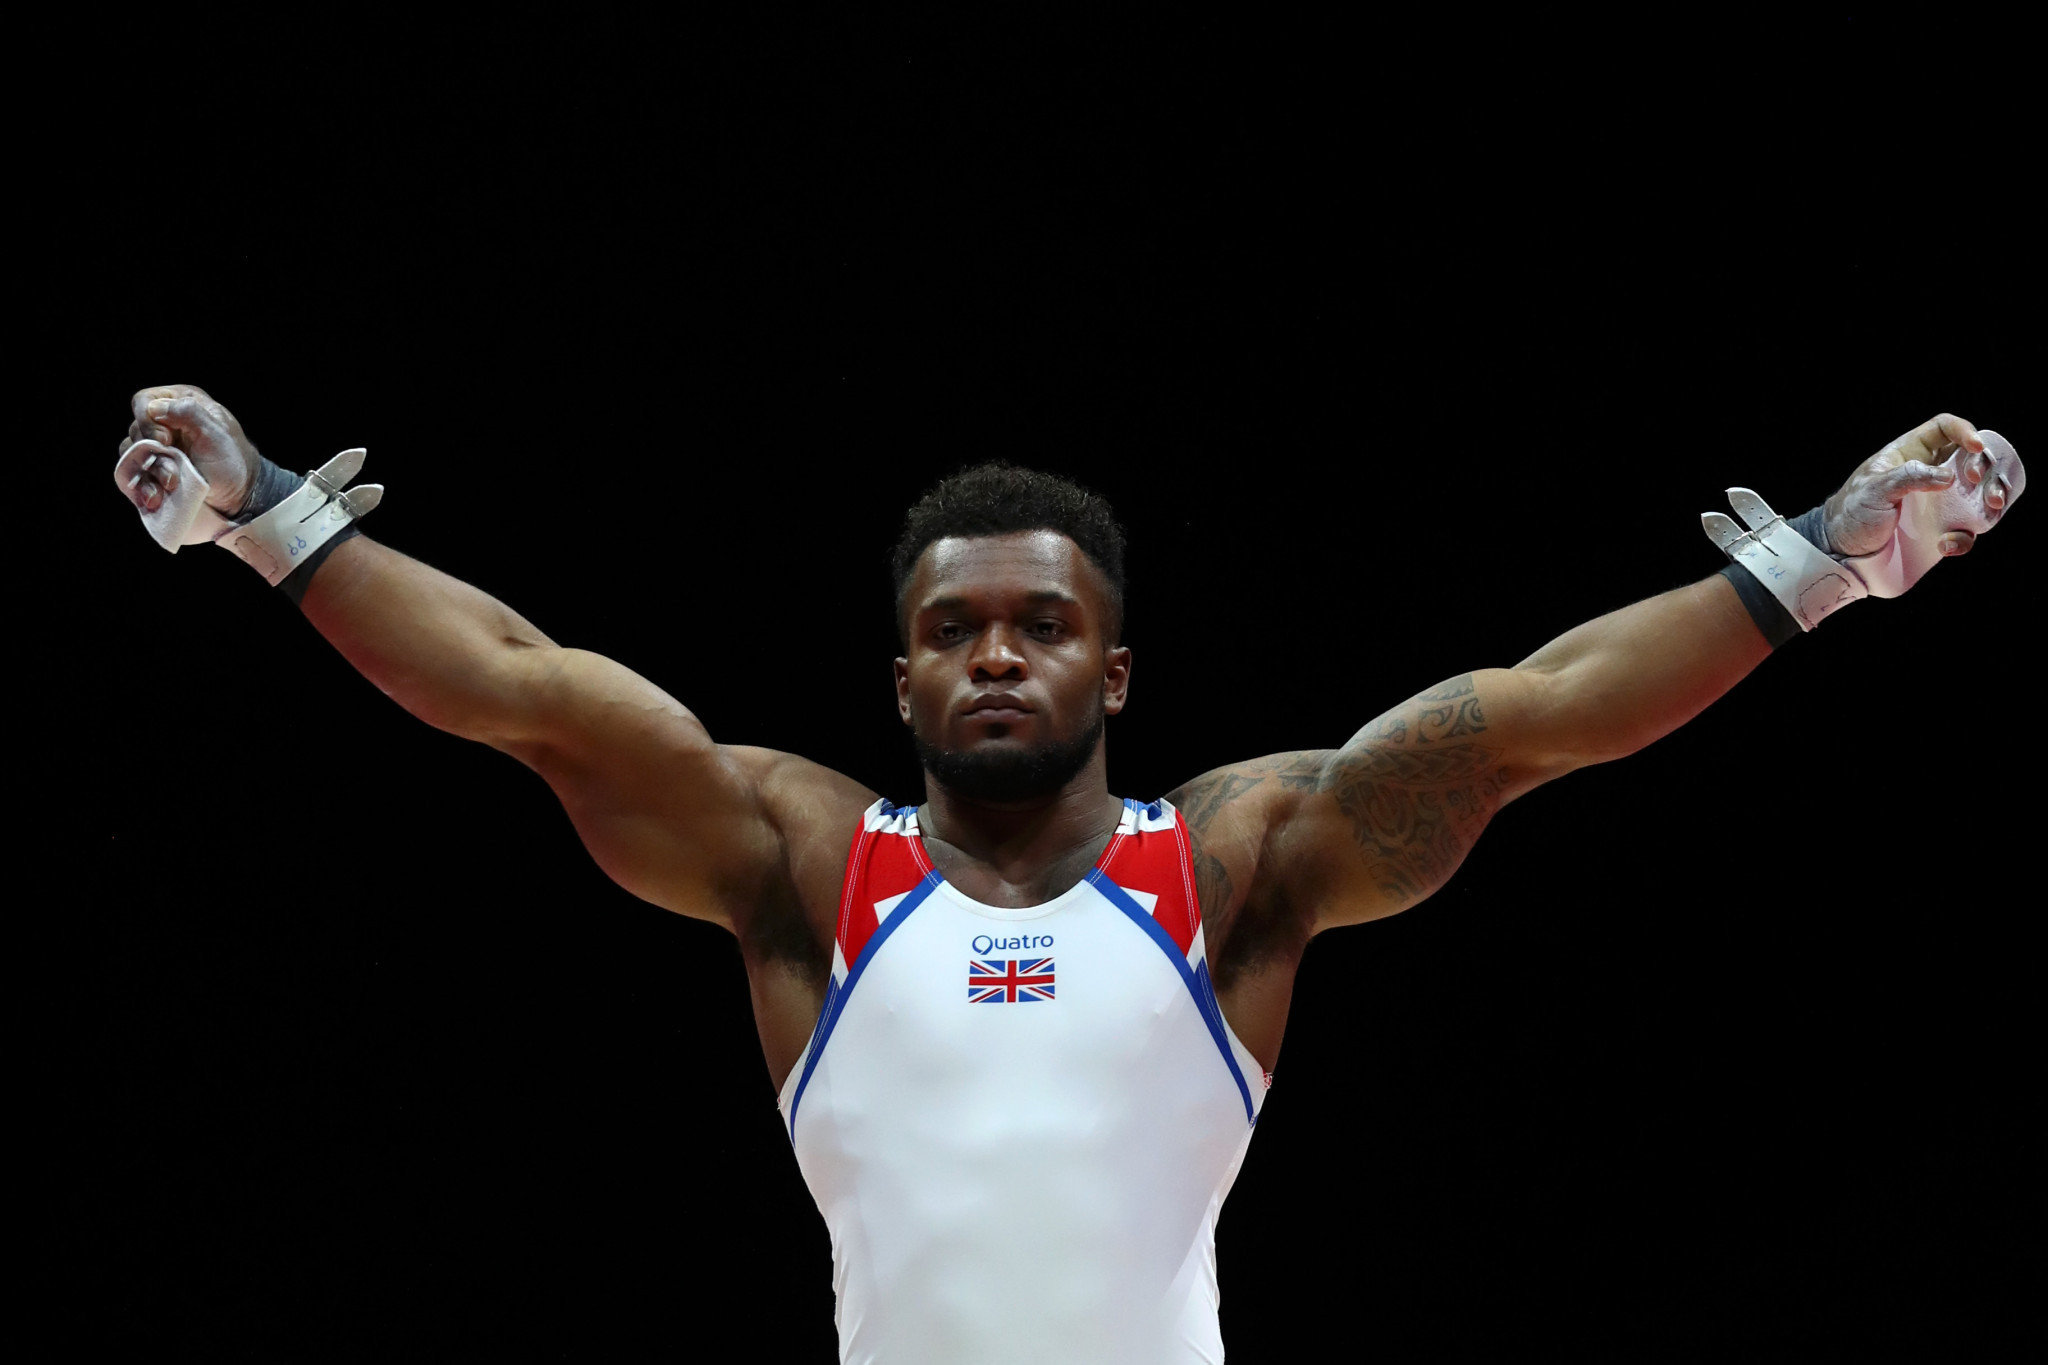 Commonwealth champion Tulloch wins men's rings at FIG Individual Apparatus World Cup in Baku